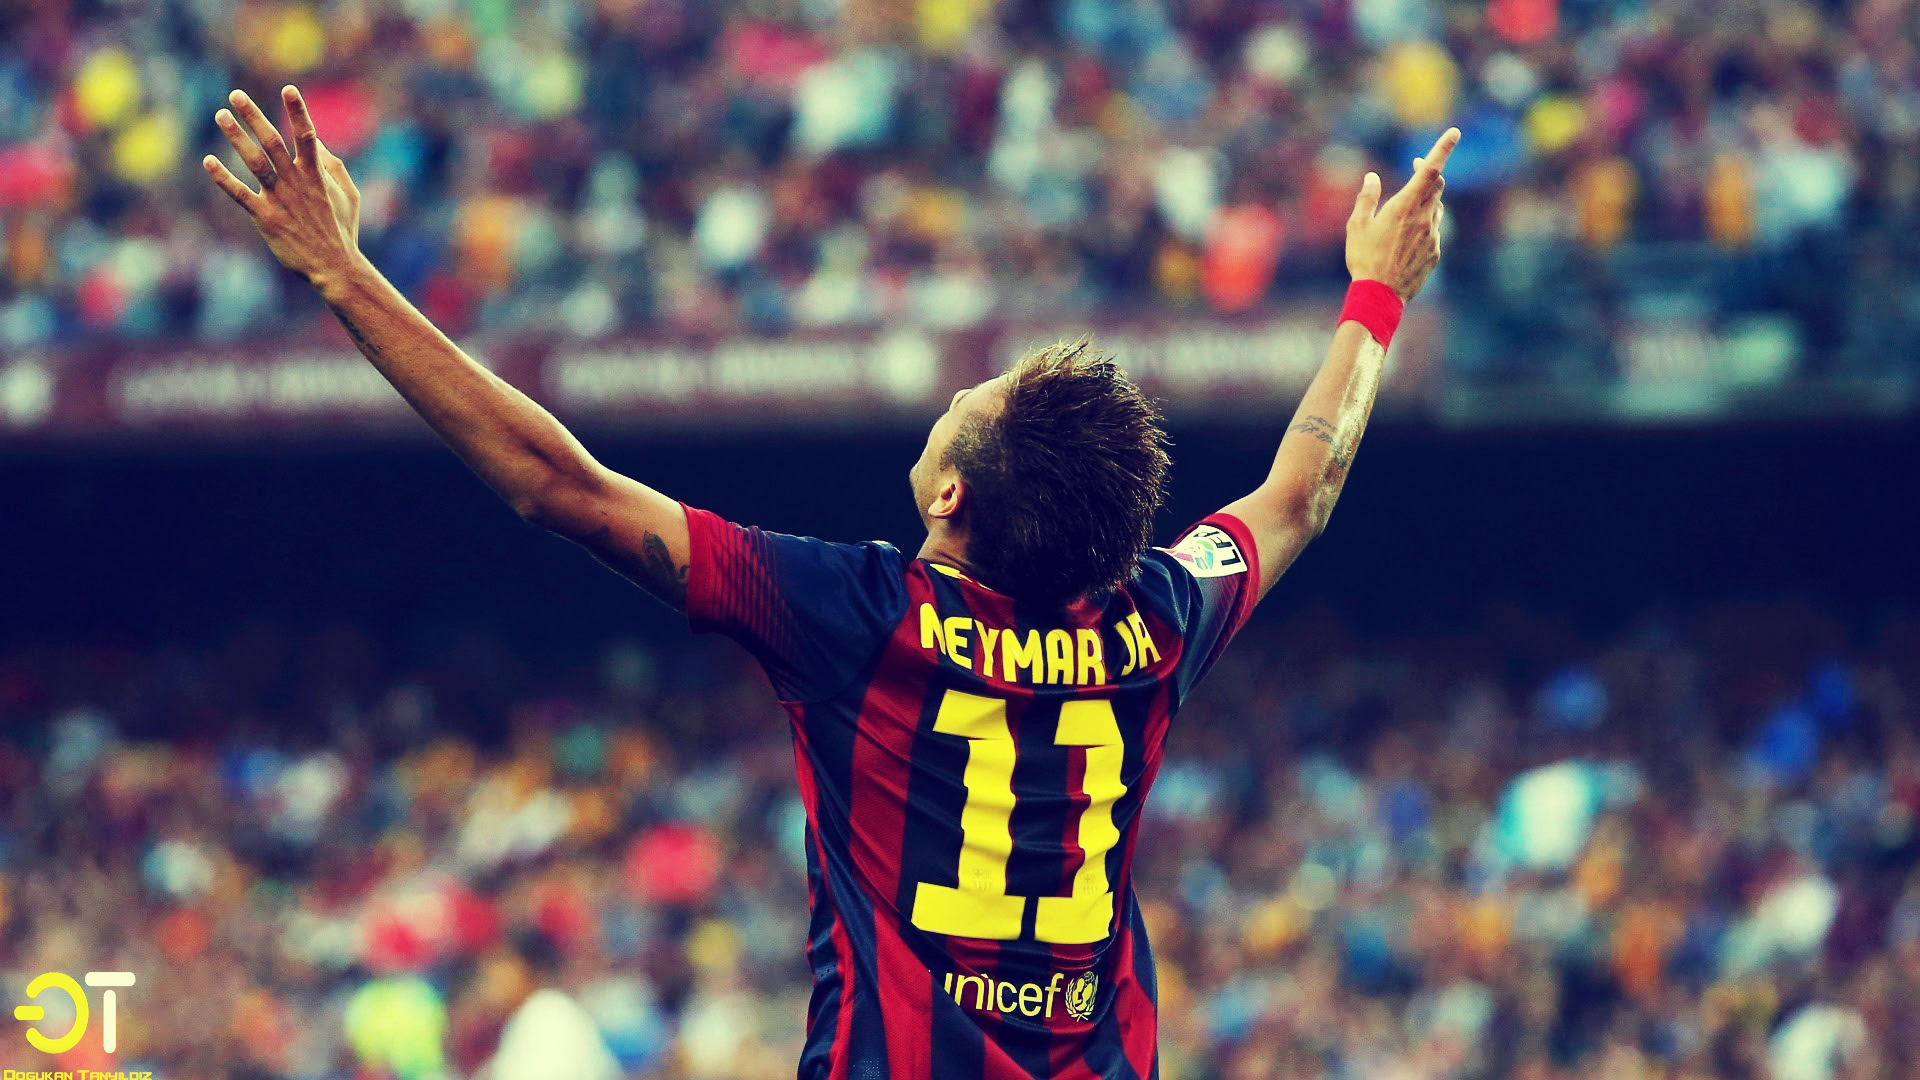 People-1920x1080-Neymar-FC-Barcelona-men-soccer-arms-up-wallpaper-wpc9008413